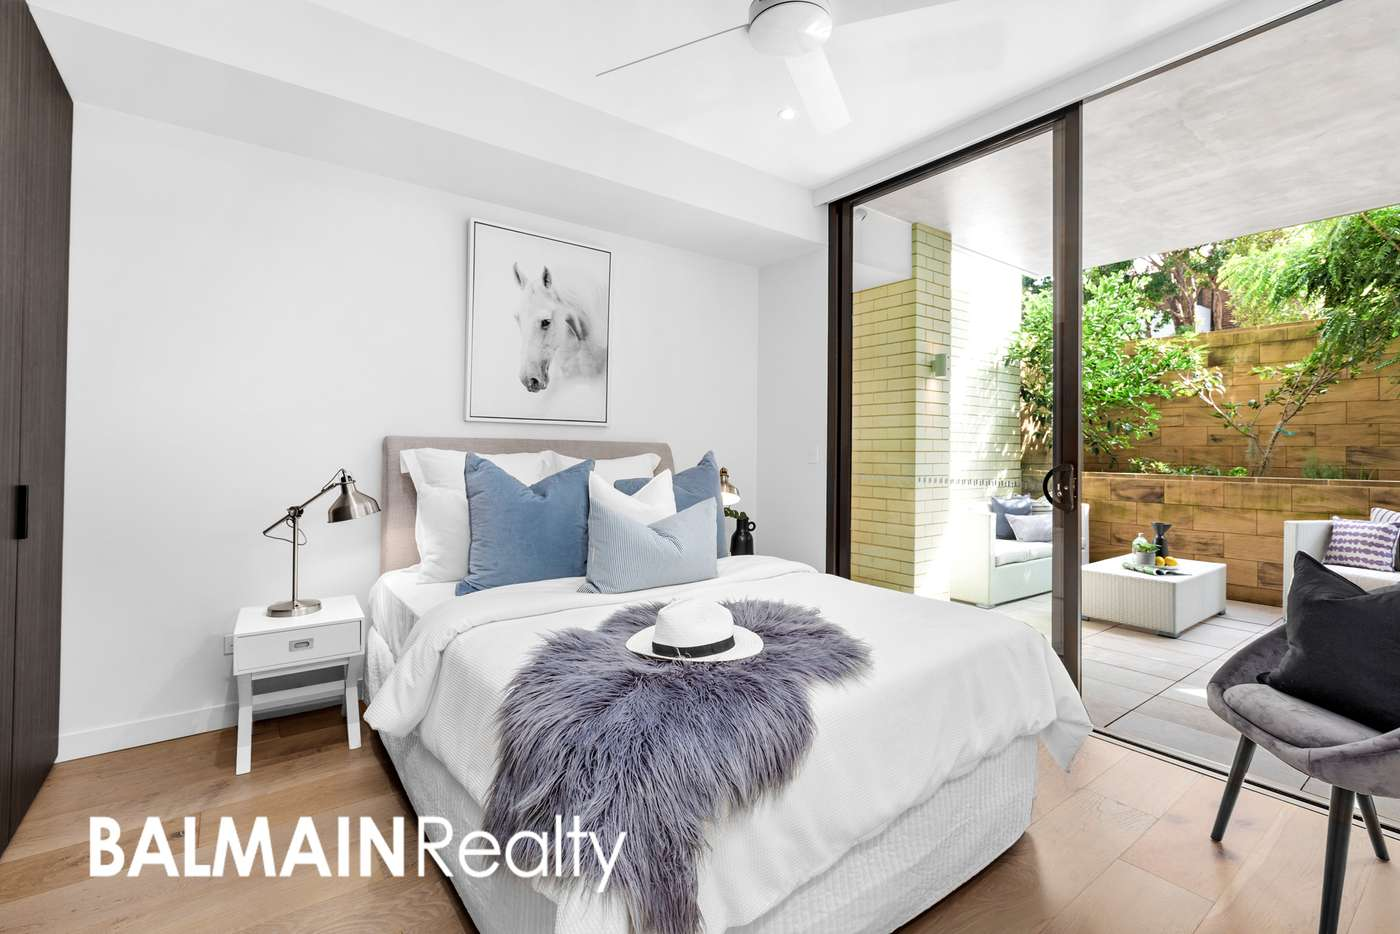 Fifth view of Homely apartment listing, 3G/110 Elliott Street, Balmain NSW 2041